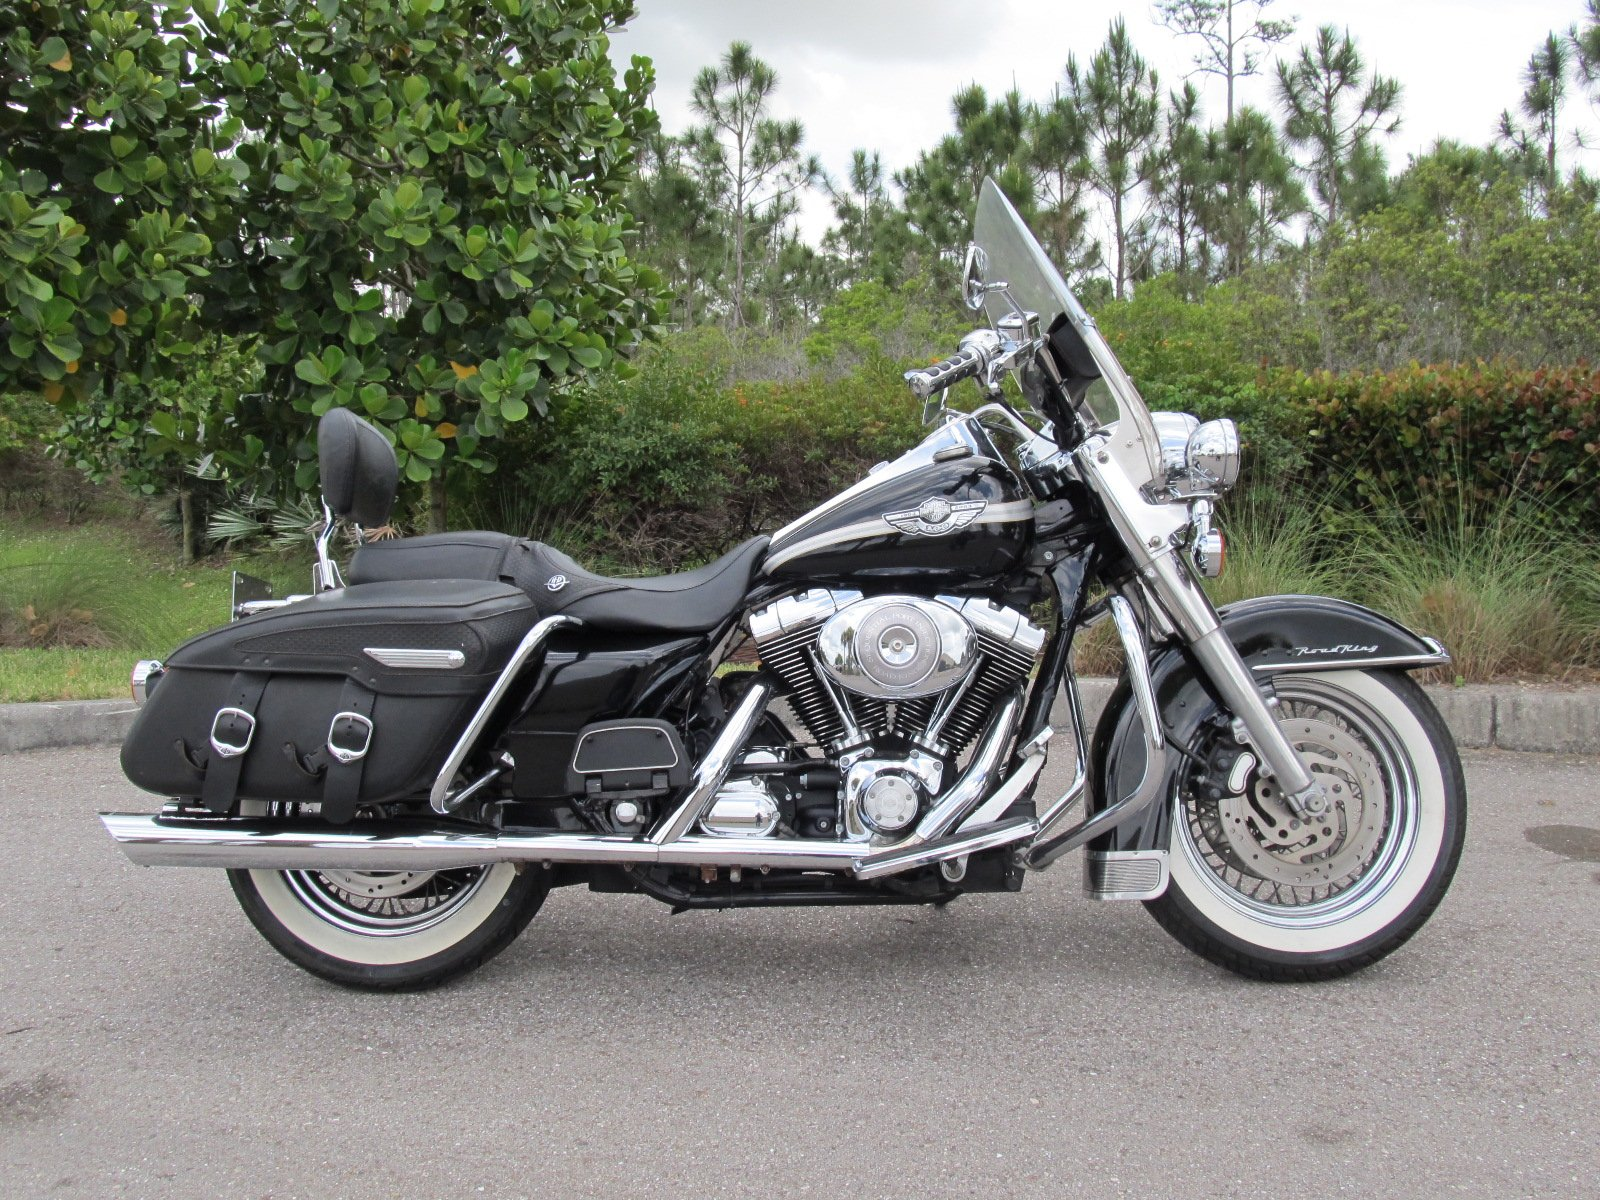 Pre-Owned 2003 Harley-Davidson Road King FLHRCI